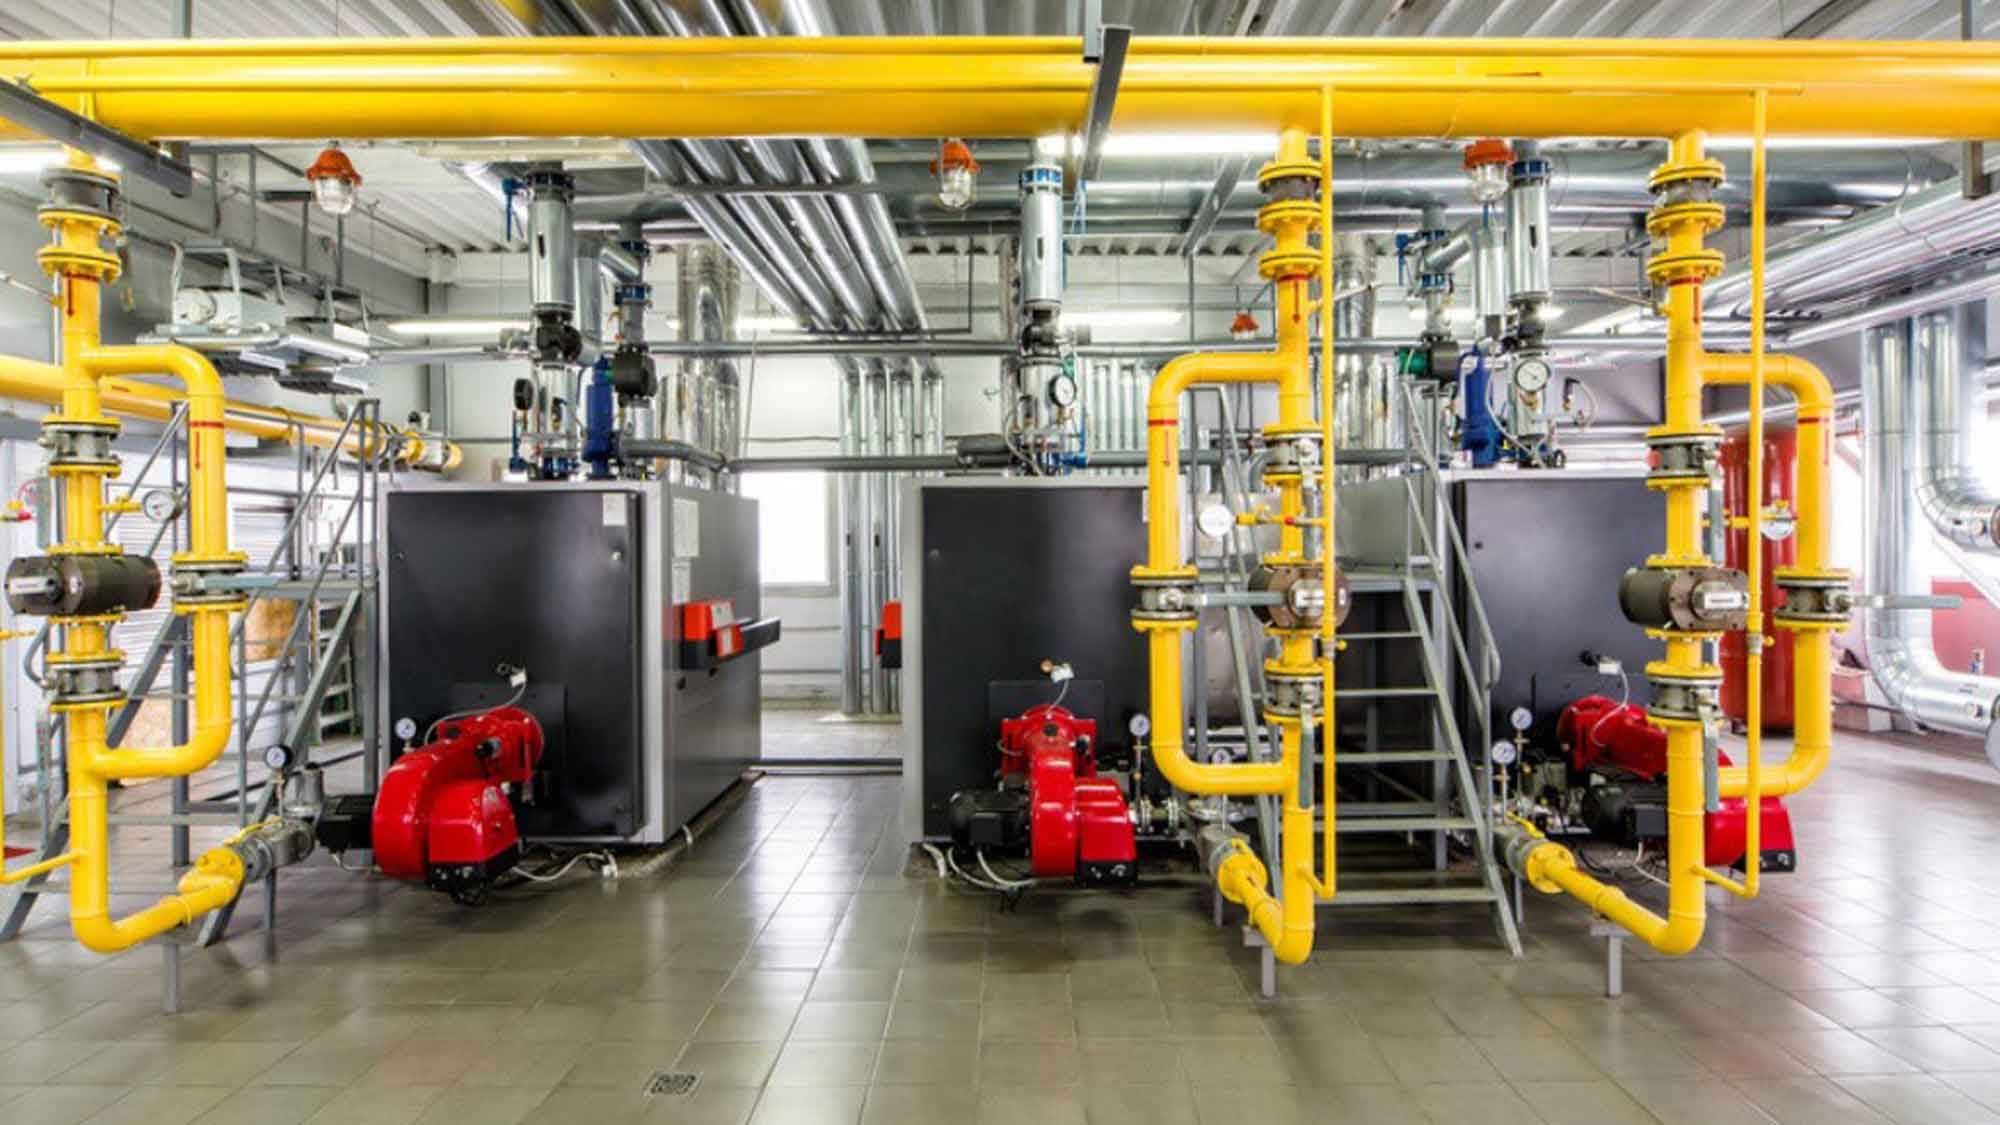 plumbing heating solutions essex maintenance leigh on sea commercial